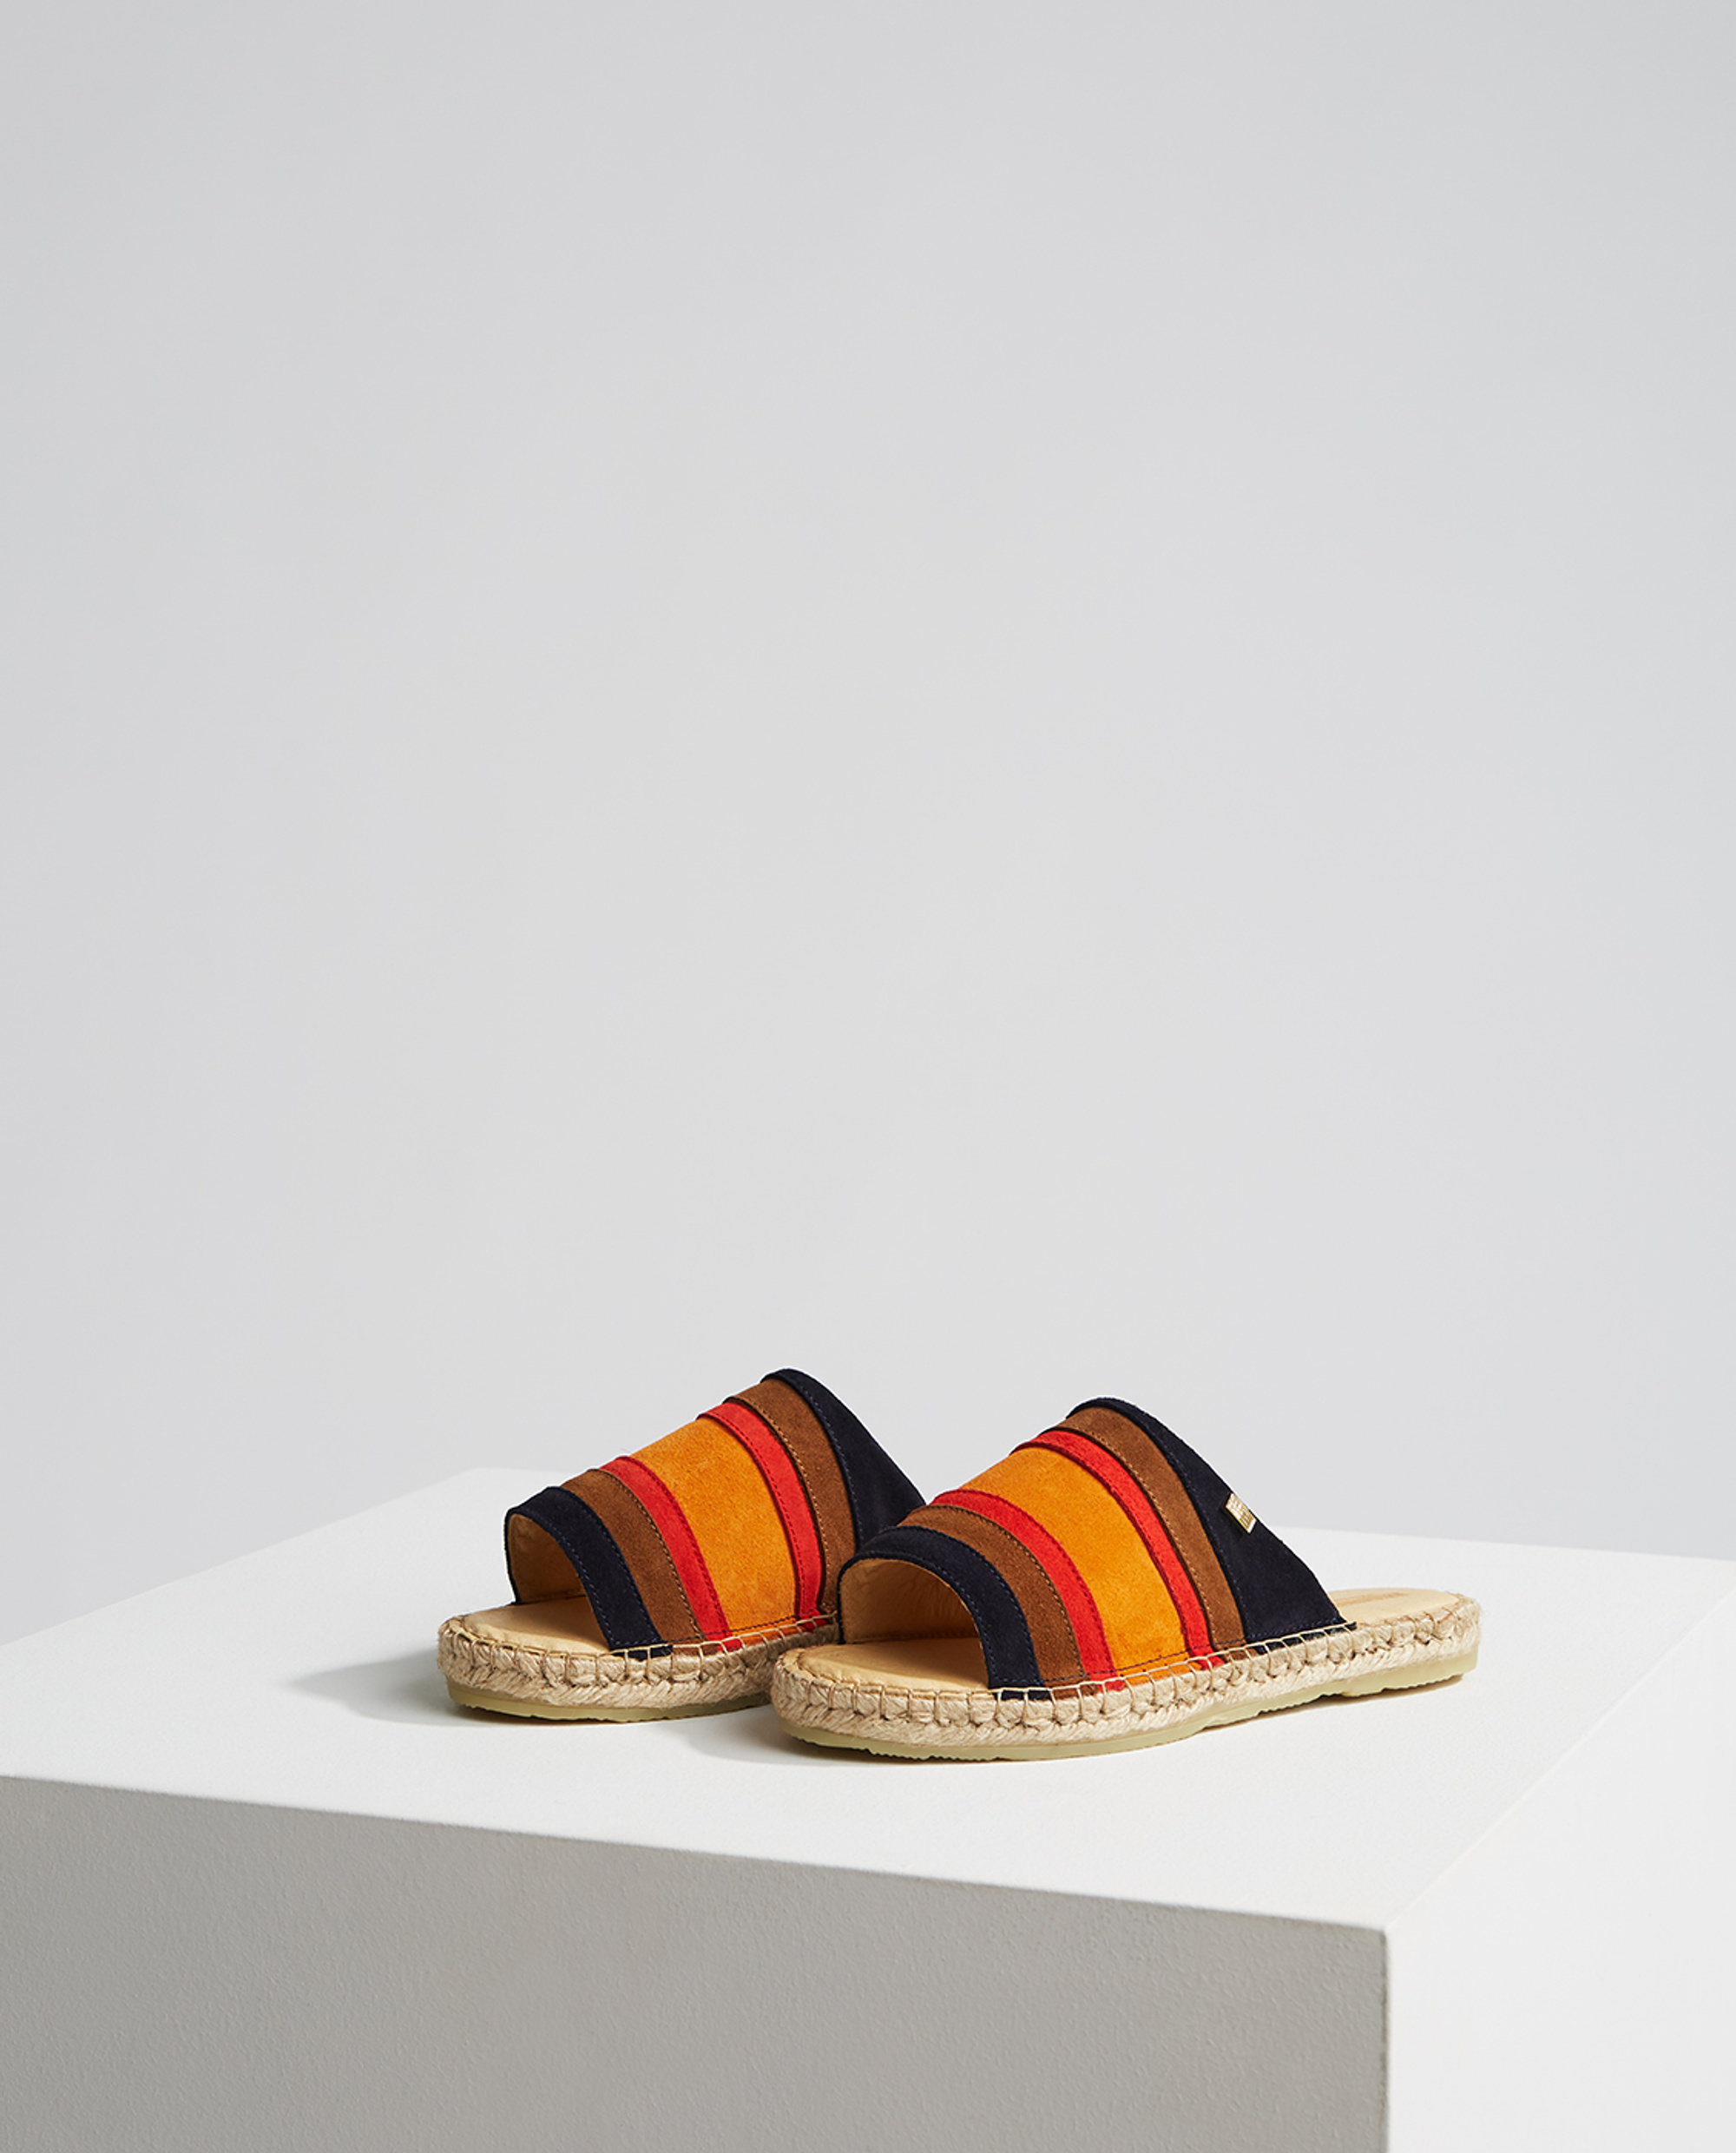 Liverly Sandals, Mutli Stripe